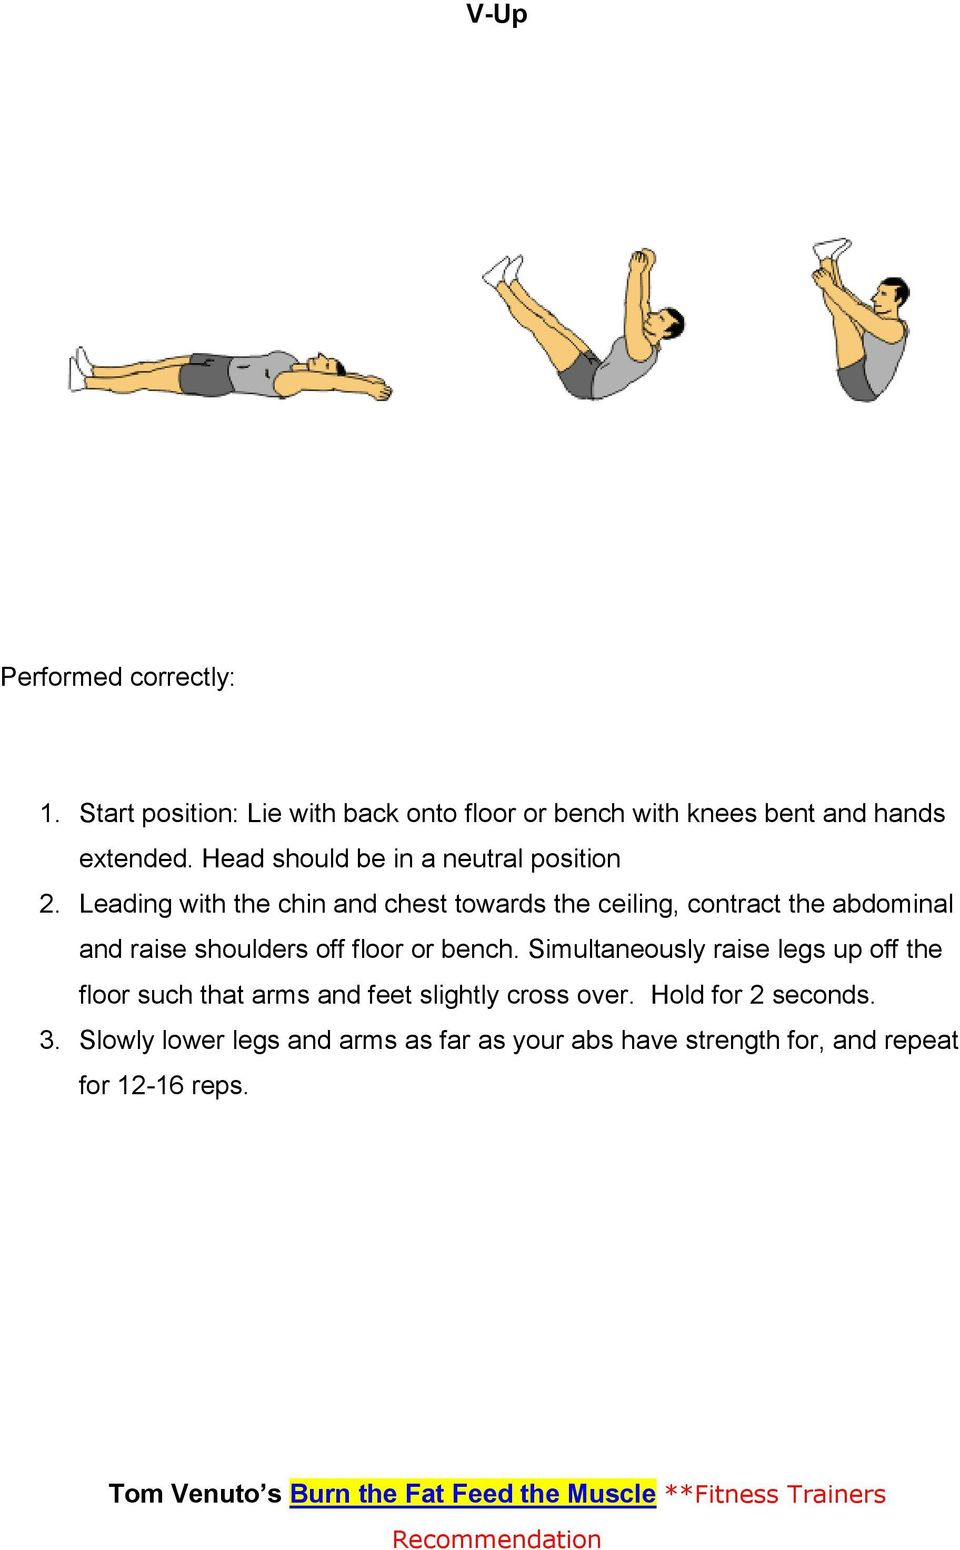 Leading with the chin and chest towards the ceiling, contract the abdominal and raise shoulders off floor or